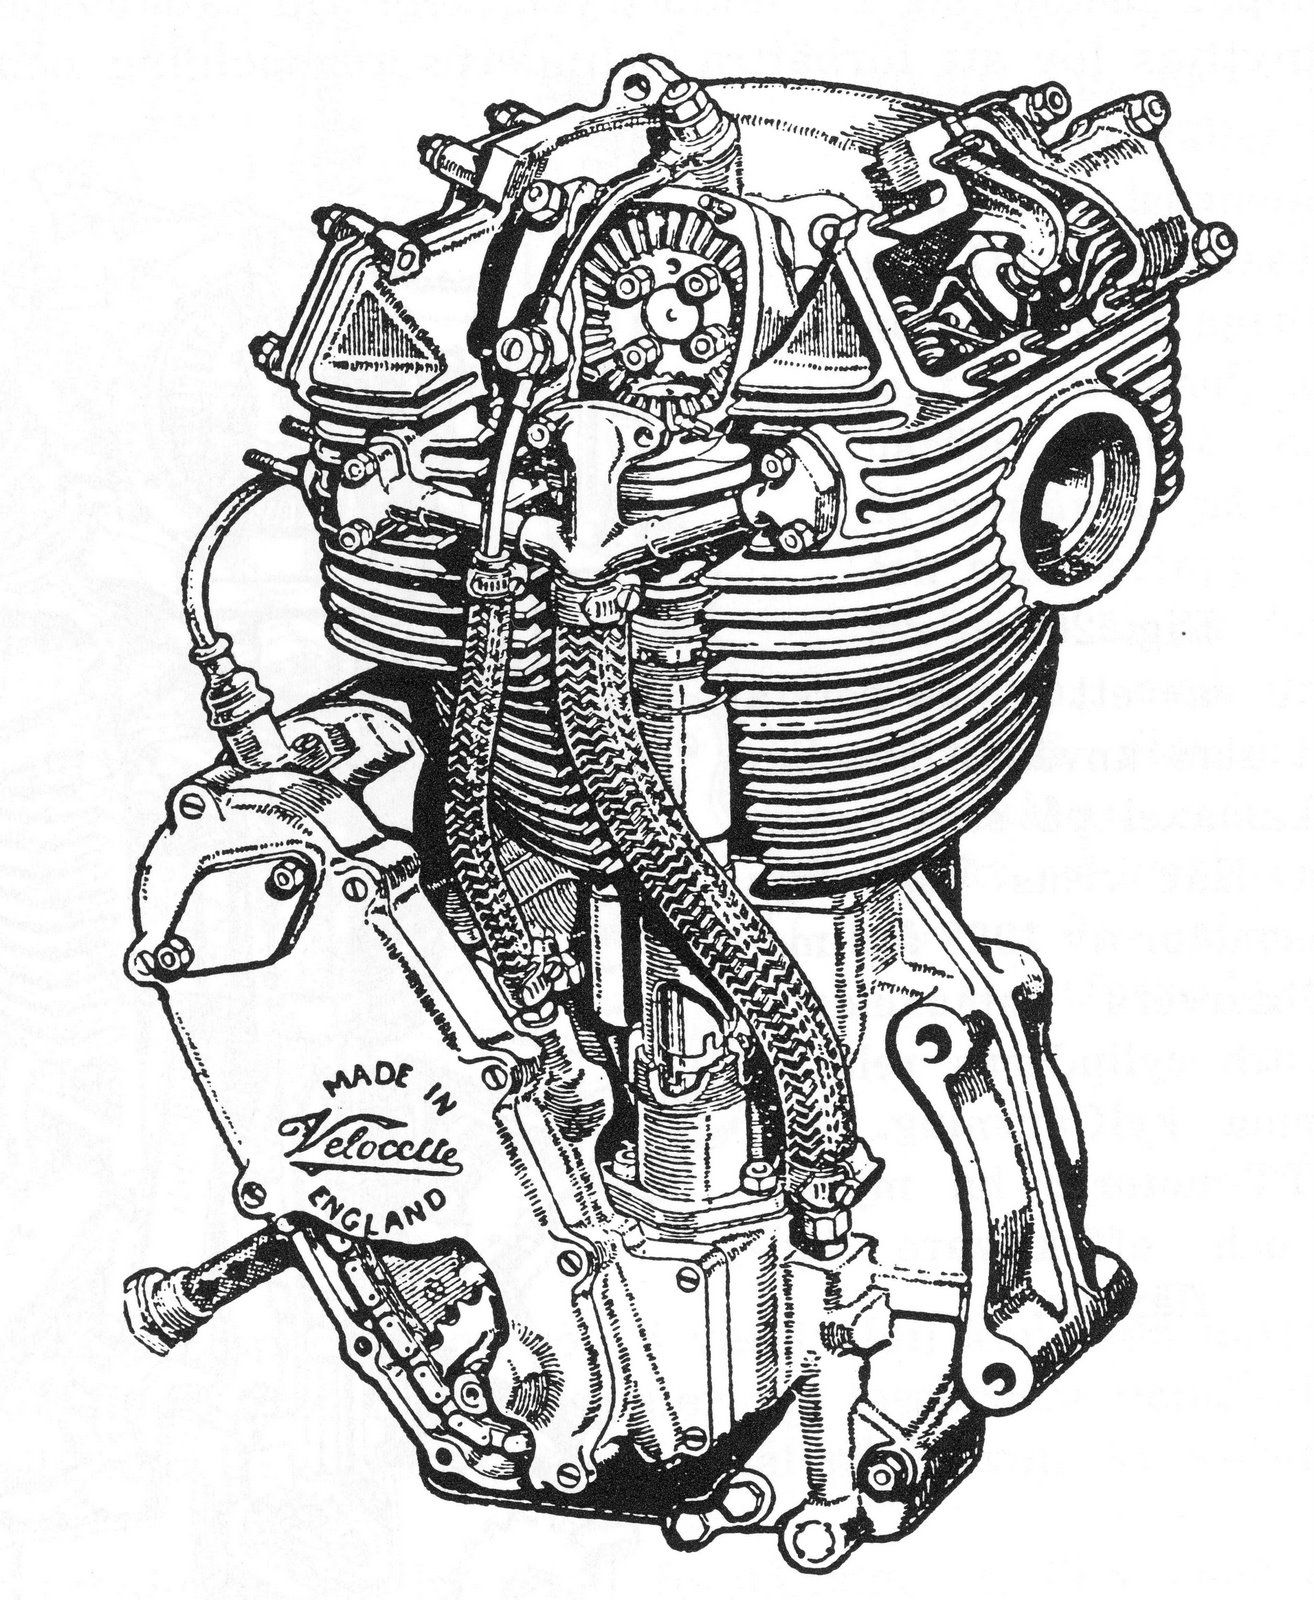 Velocette owners club dorking centre plete list of all motorcycle manufacturers wide